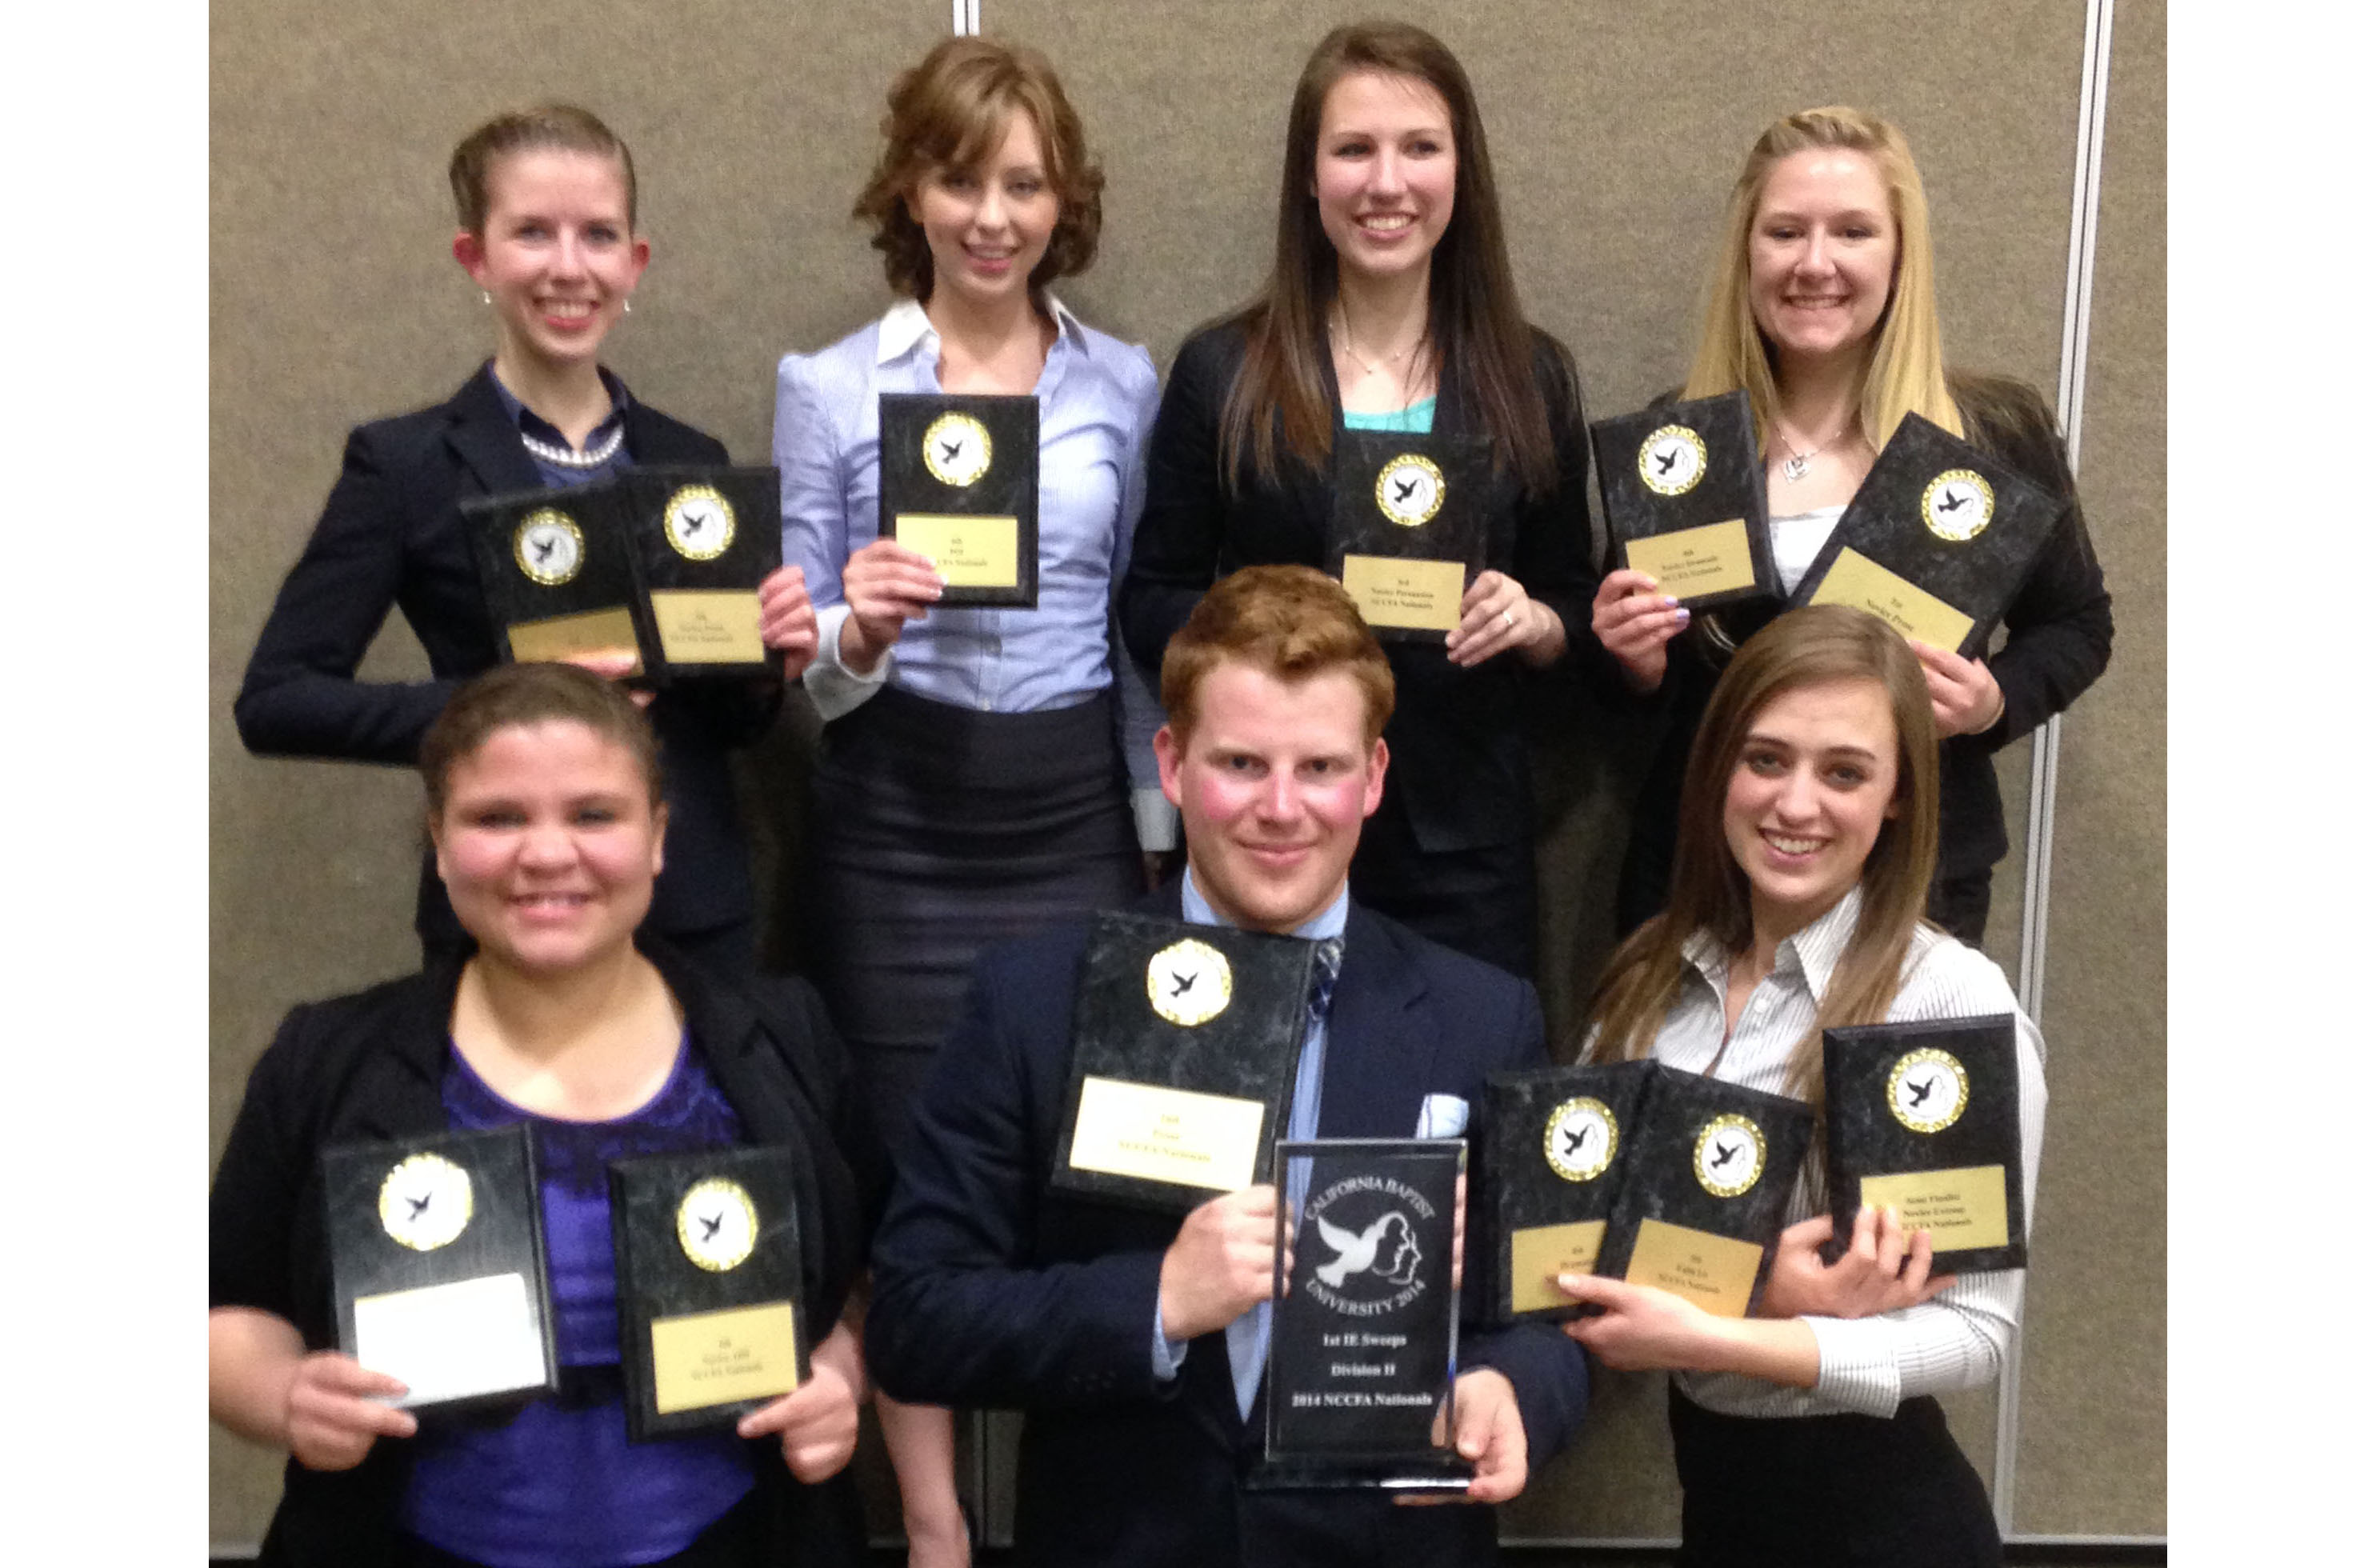 National Championship for Speech Team